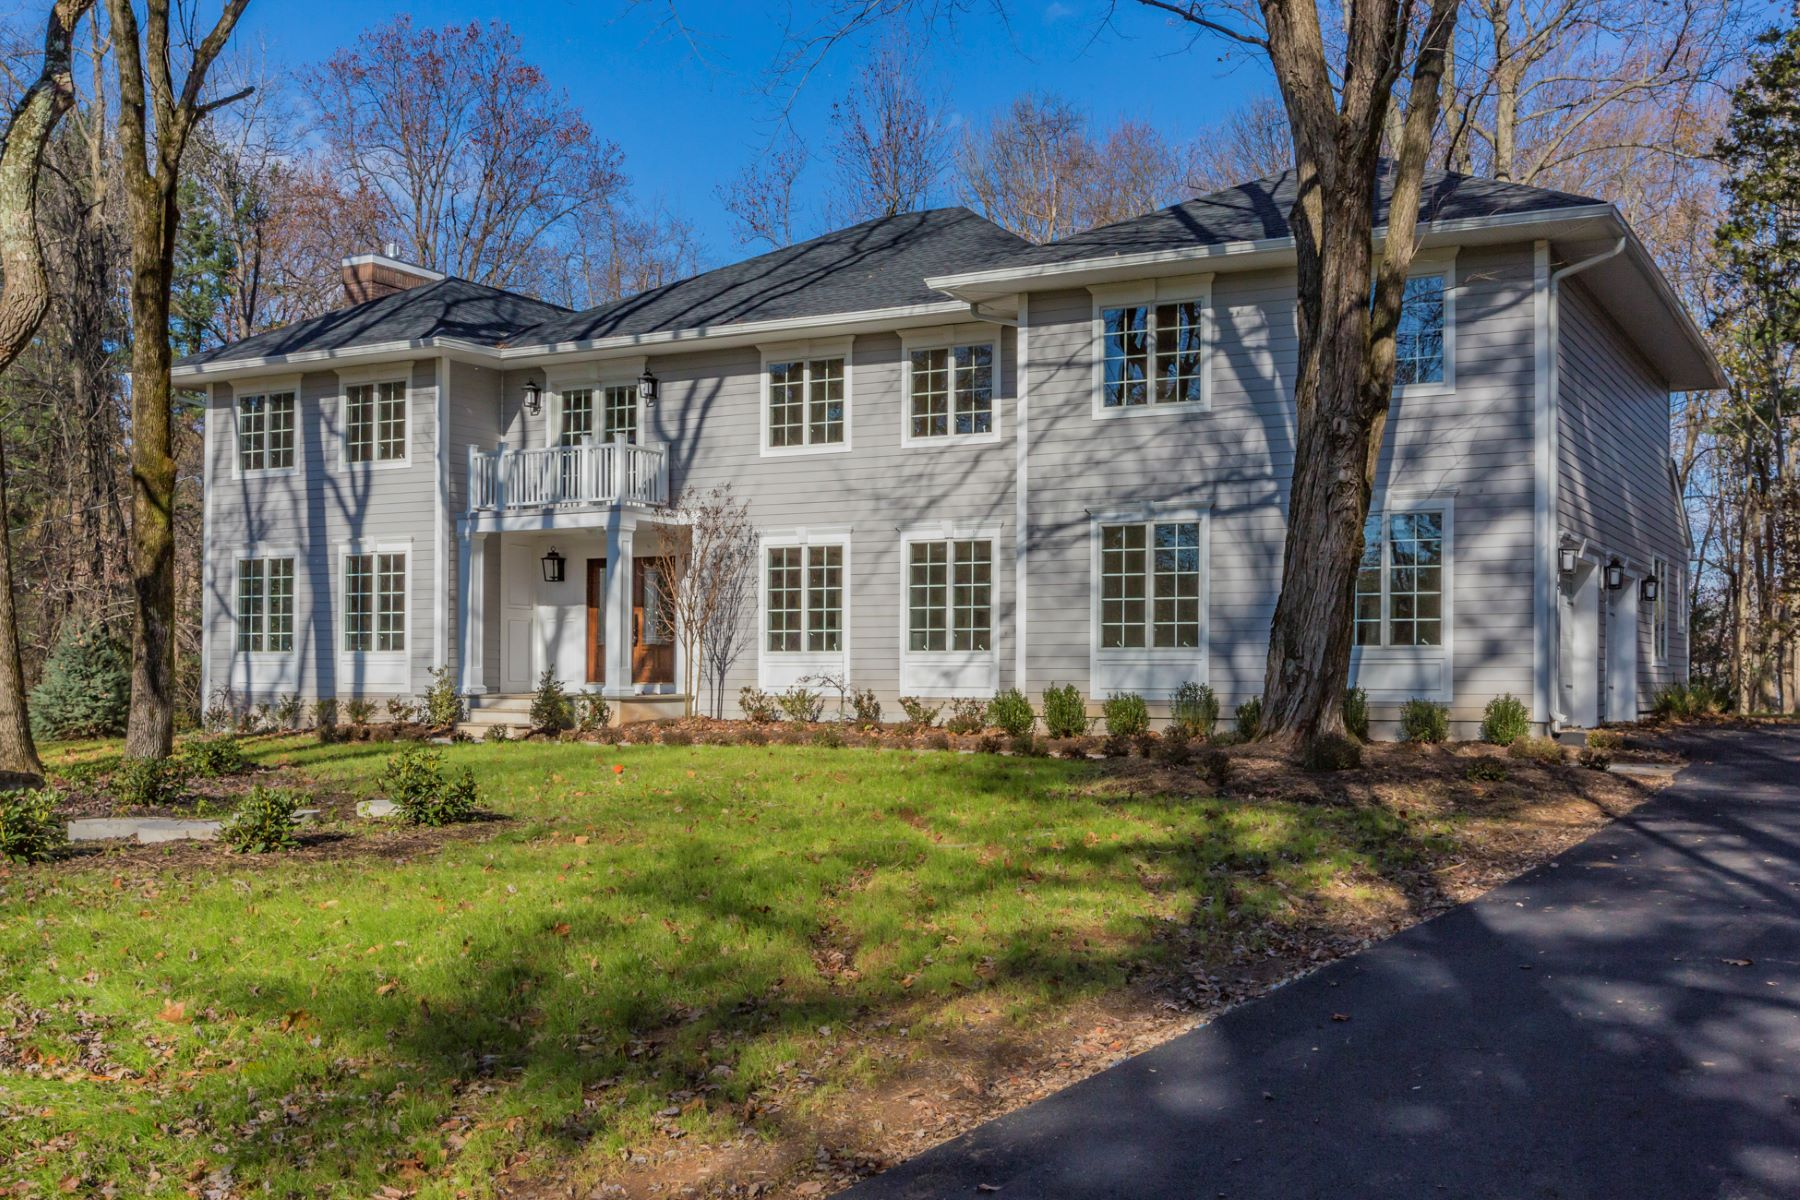 Single Family Home for Sale at Dramatically Remodeled To The Highest Standards 1163 Great Road, Princeton, New Jersey 08540 United StatesMunicipality: Princeton